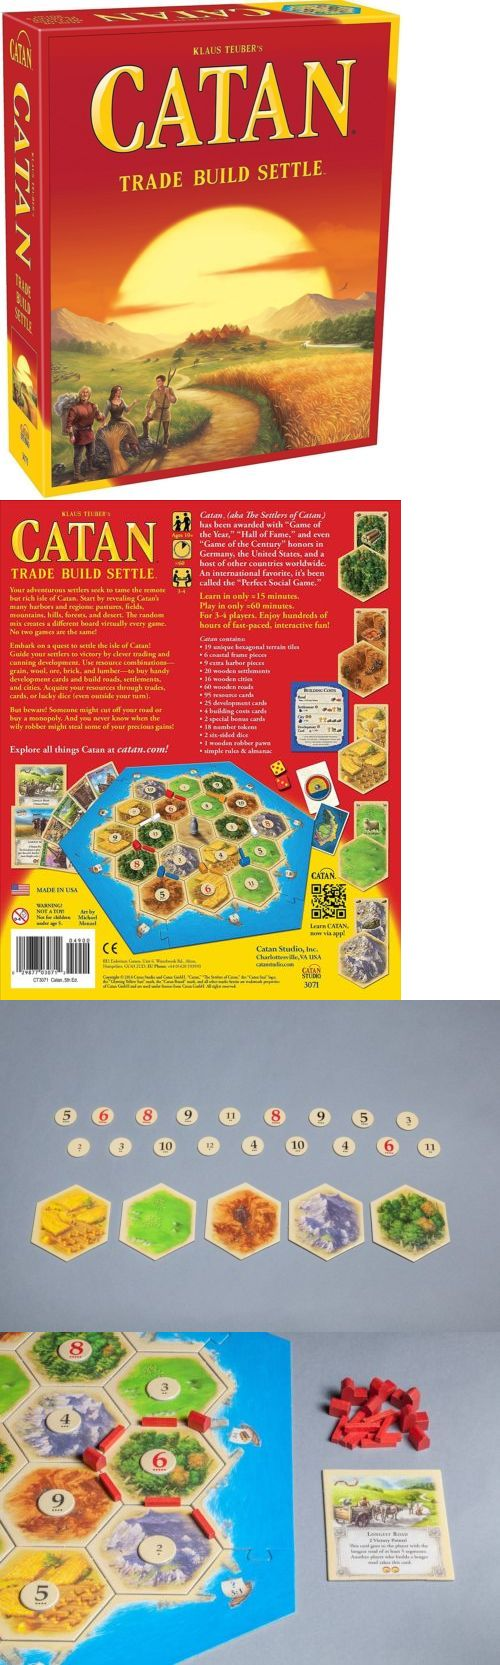 Gaiters 181377: Catan 5Th Edition Toy Game Kids Play Gift Board Traditional Game 3-4 Players -> BUY IT NOW ONLY: $30 on eBay!